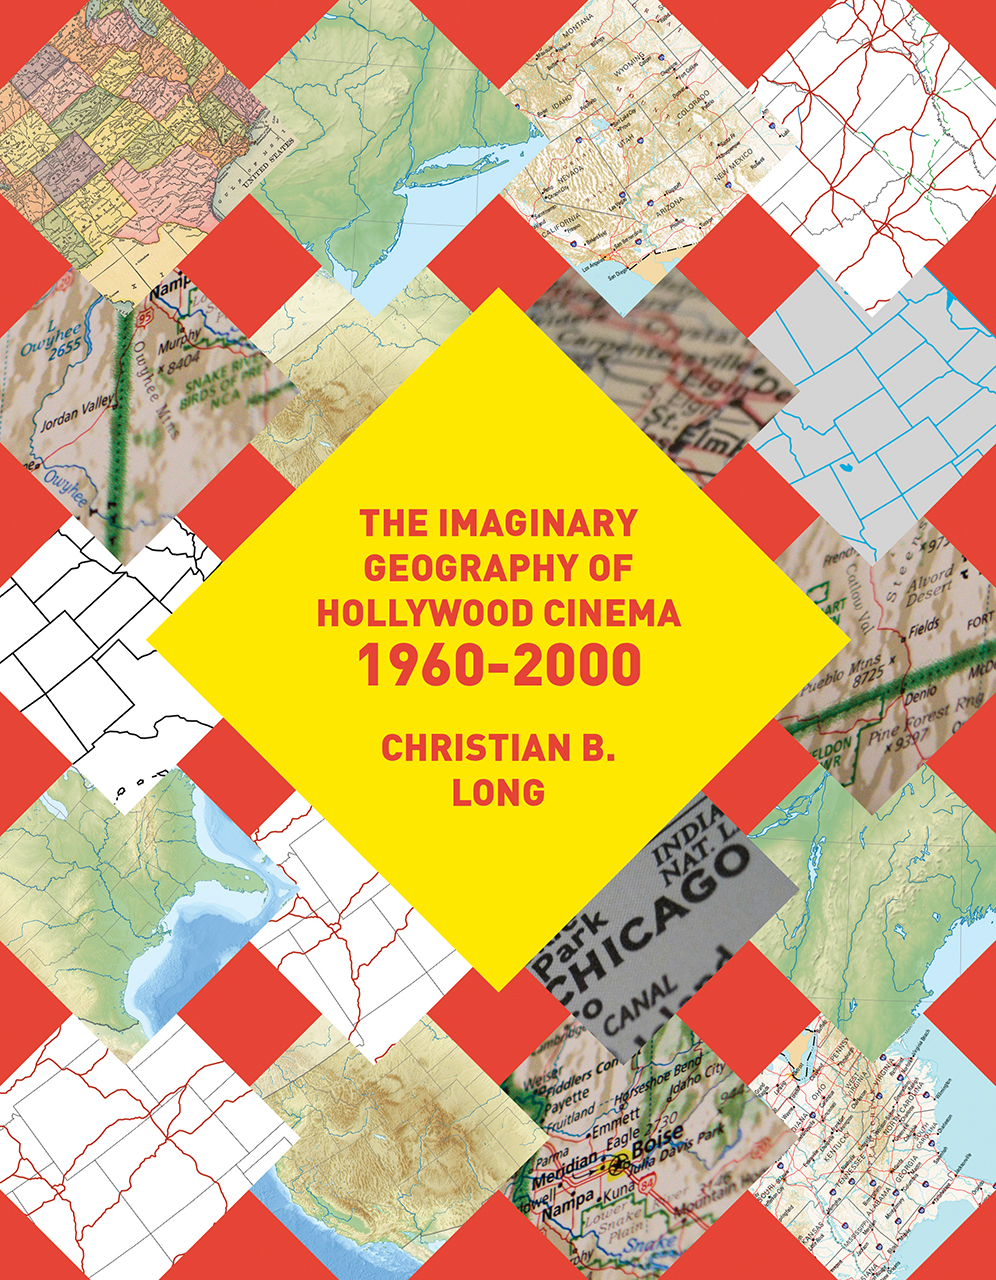 The Imaginary Geography of Hollywood Cinema 1960-2000